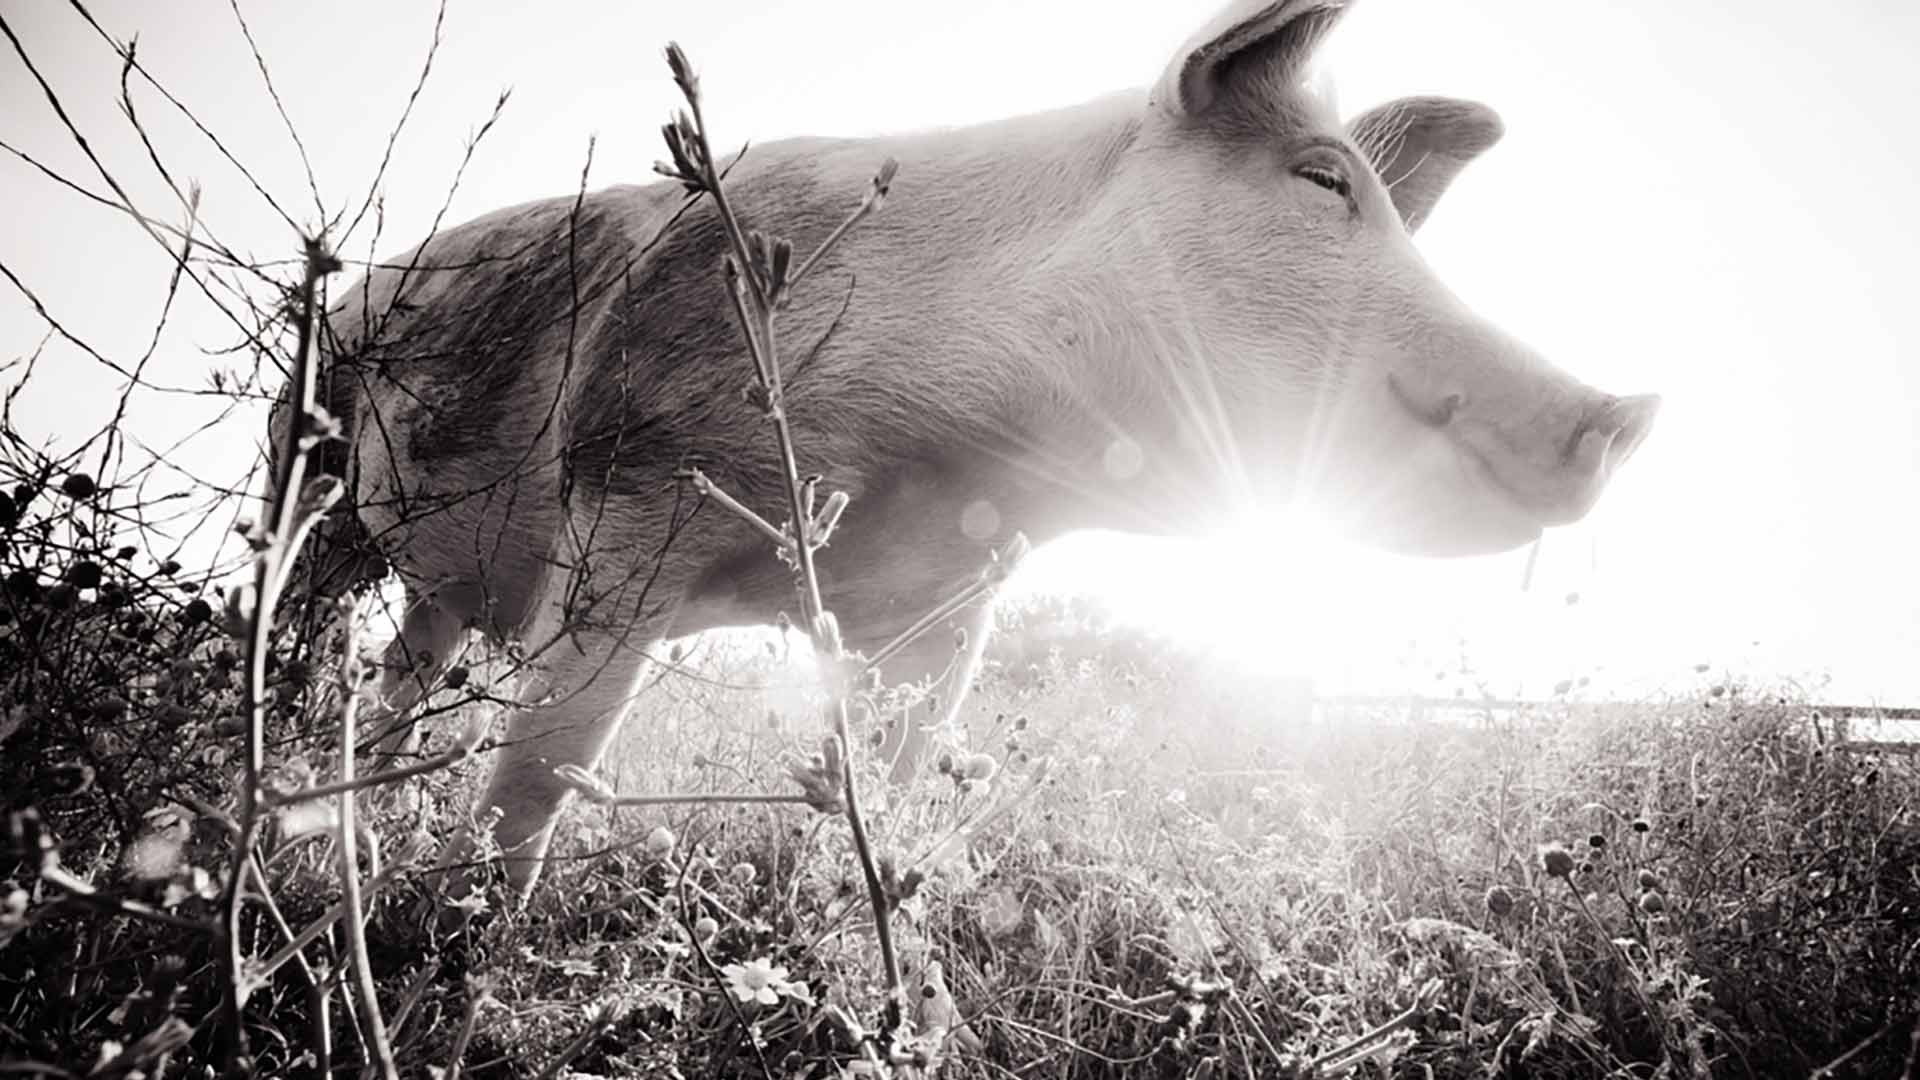 Jane the rescue pig | Sanctuary Spotlight | Your Daily Vegan